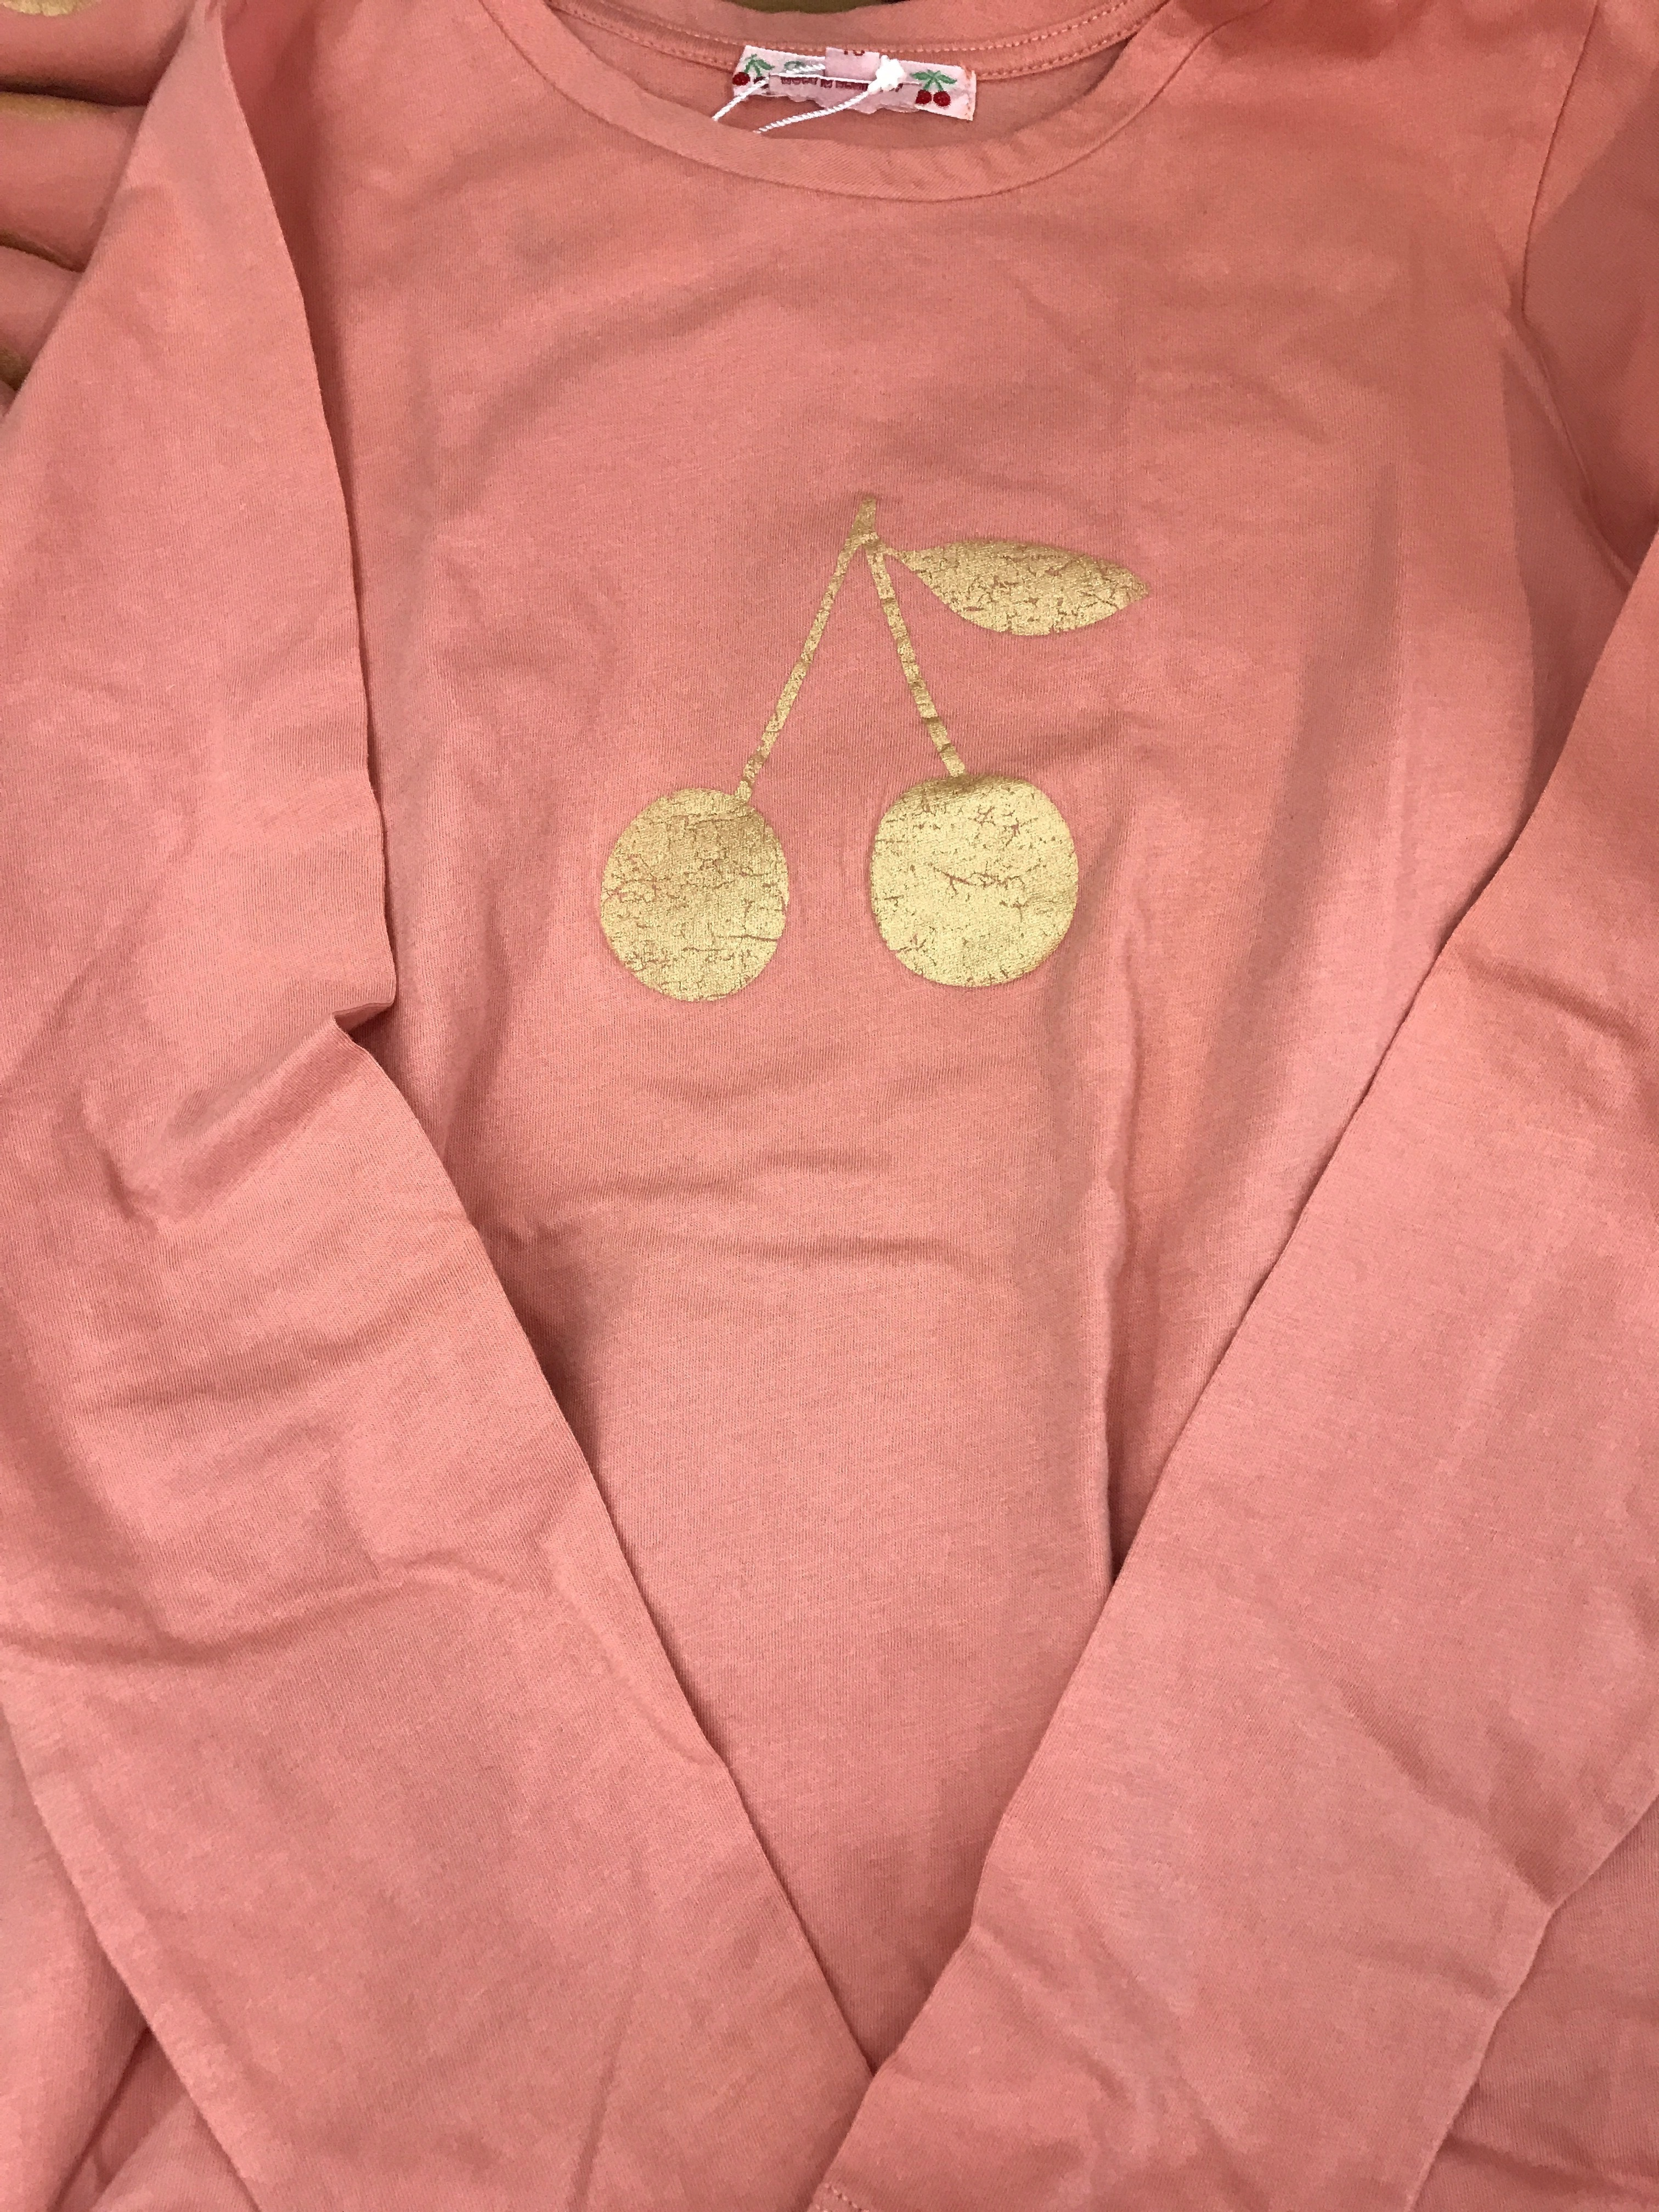 17AW【Bonpoint】チェリープリントTシャツ 8~12A (rose)